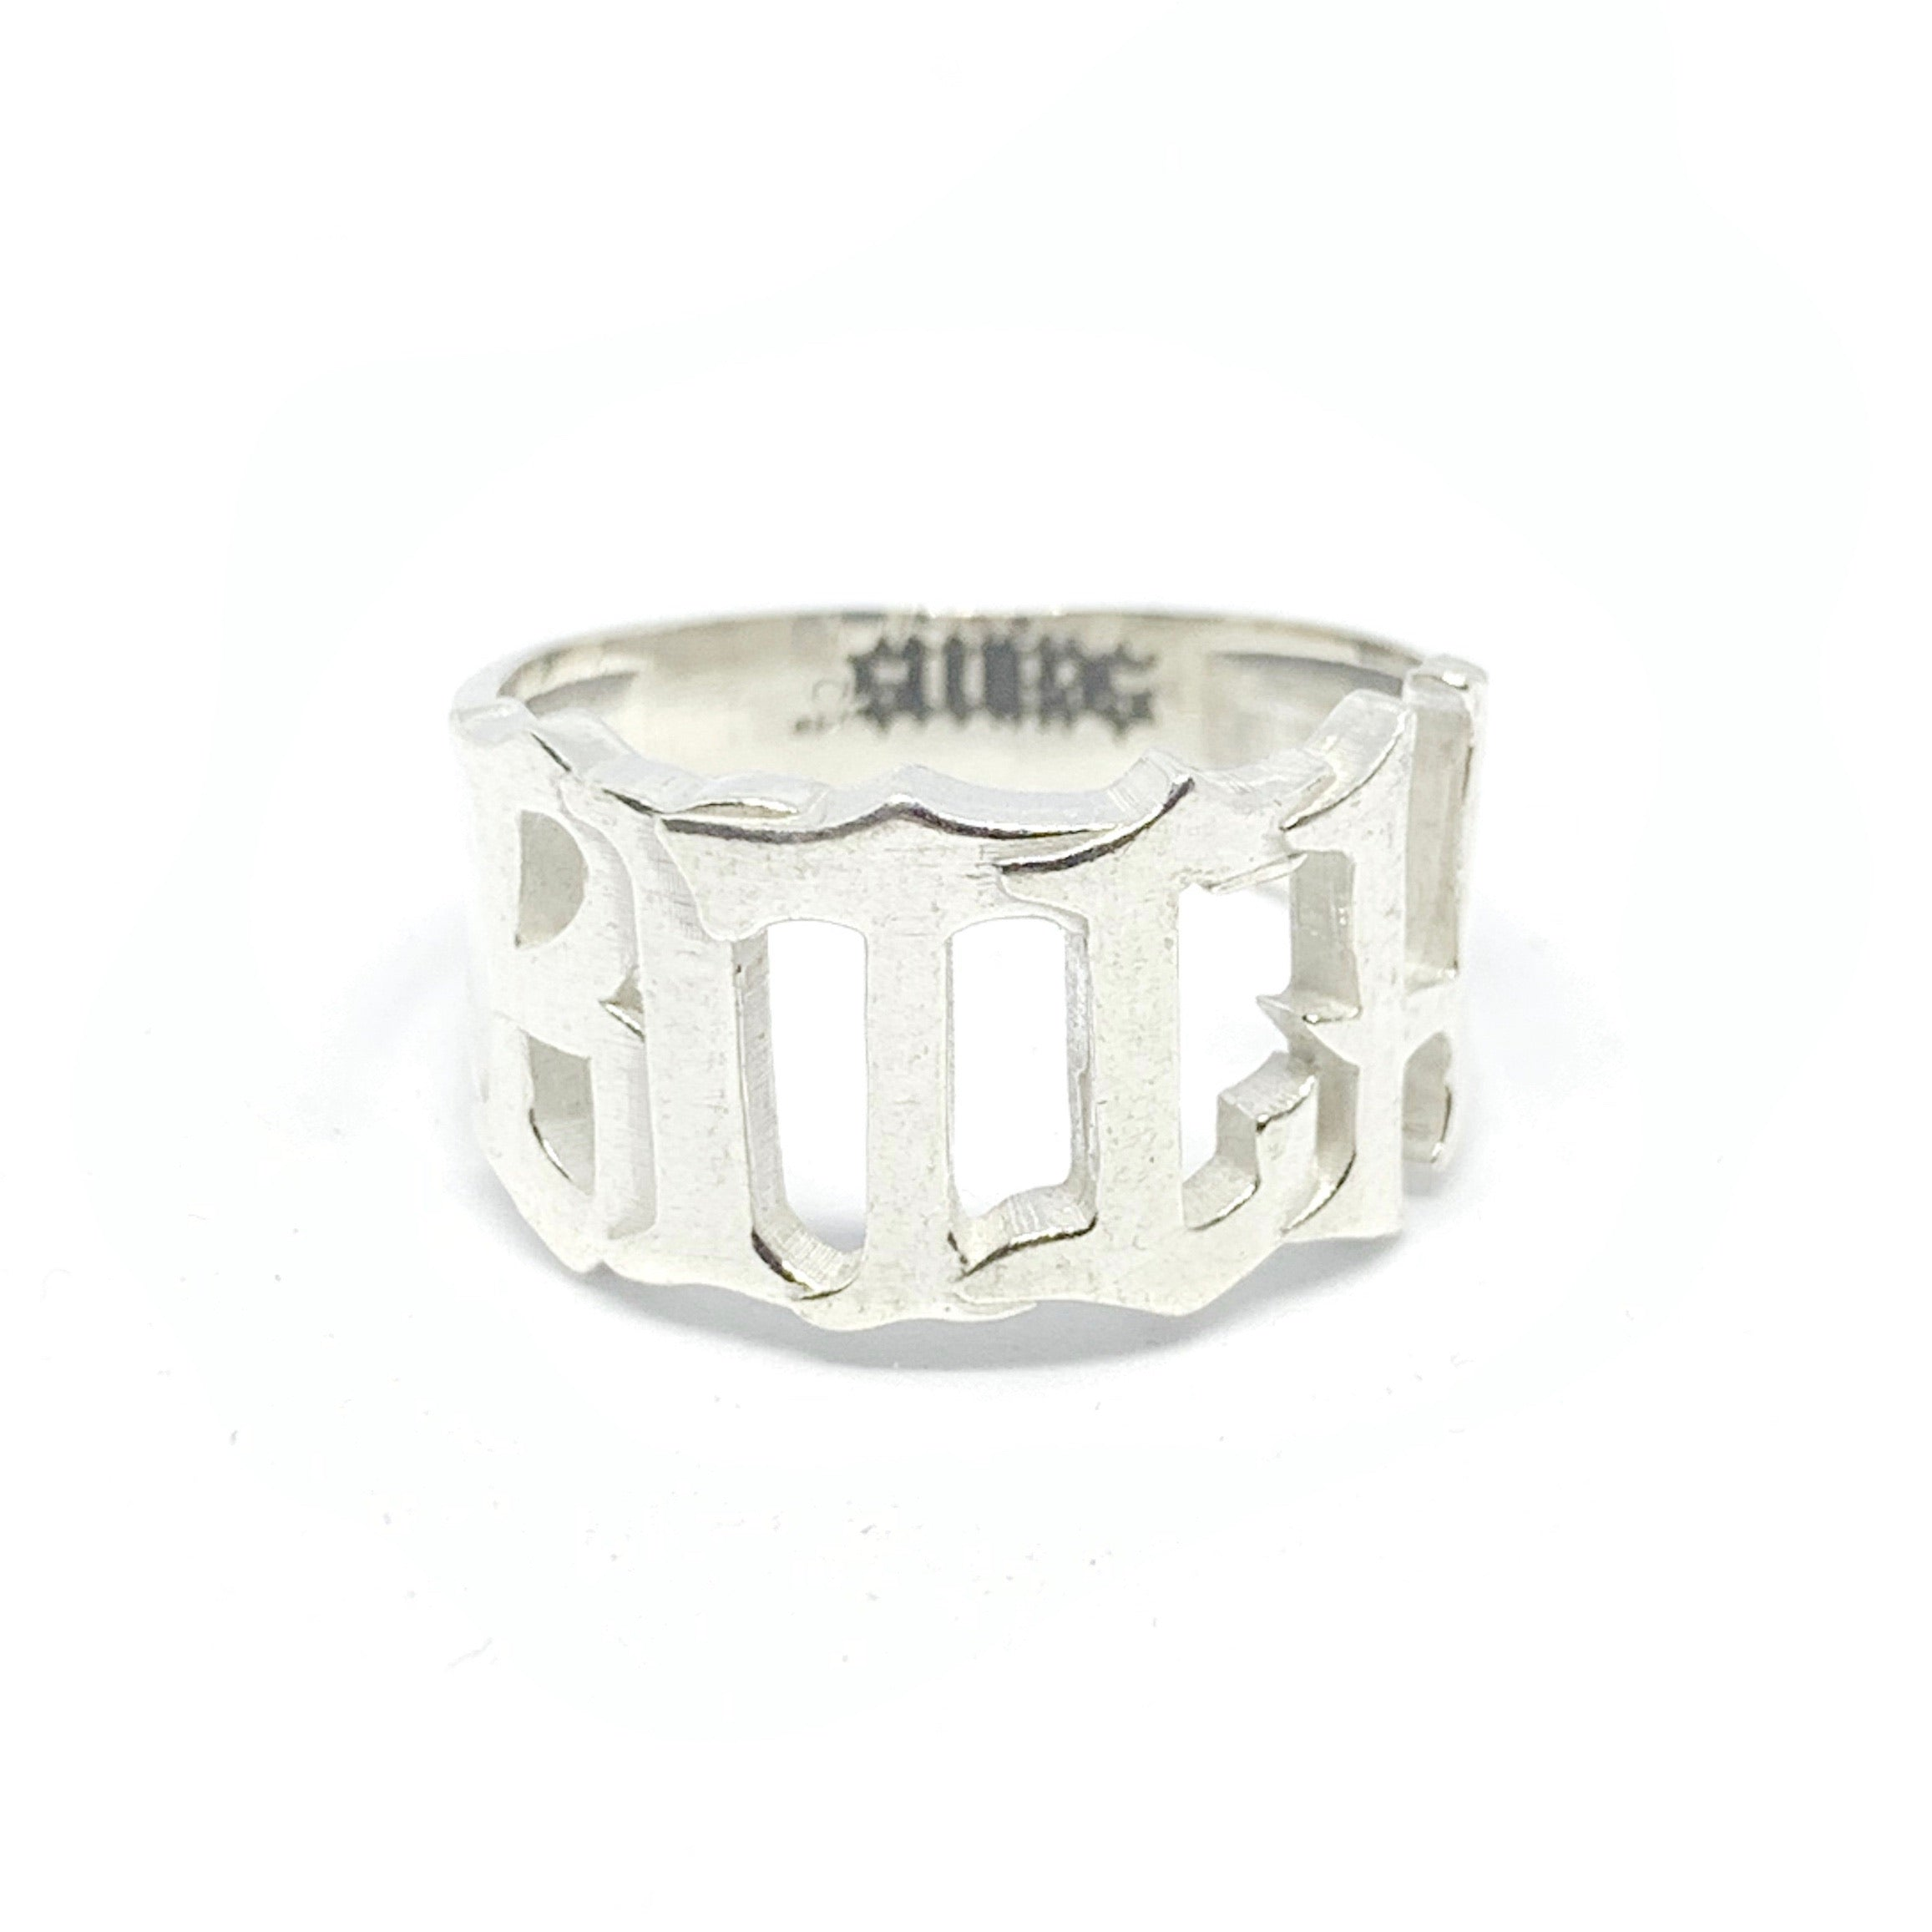 STERLING SILVER BITCH RING